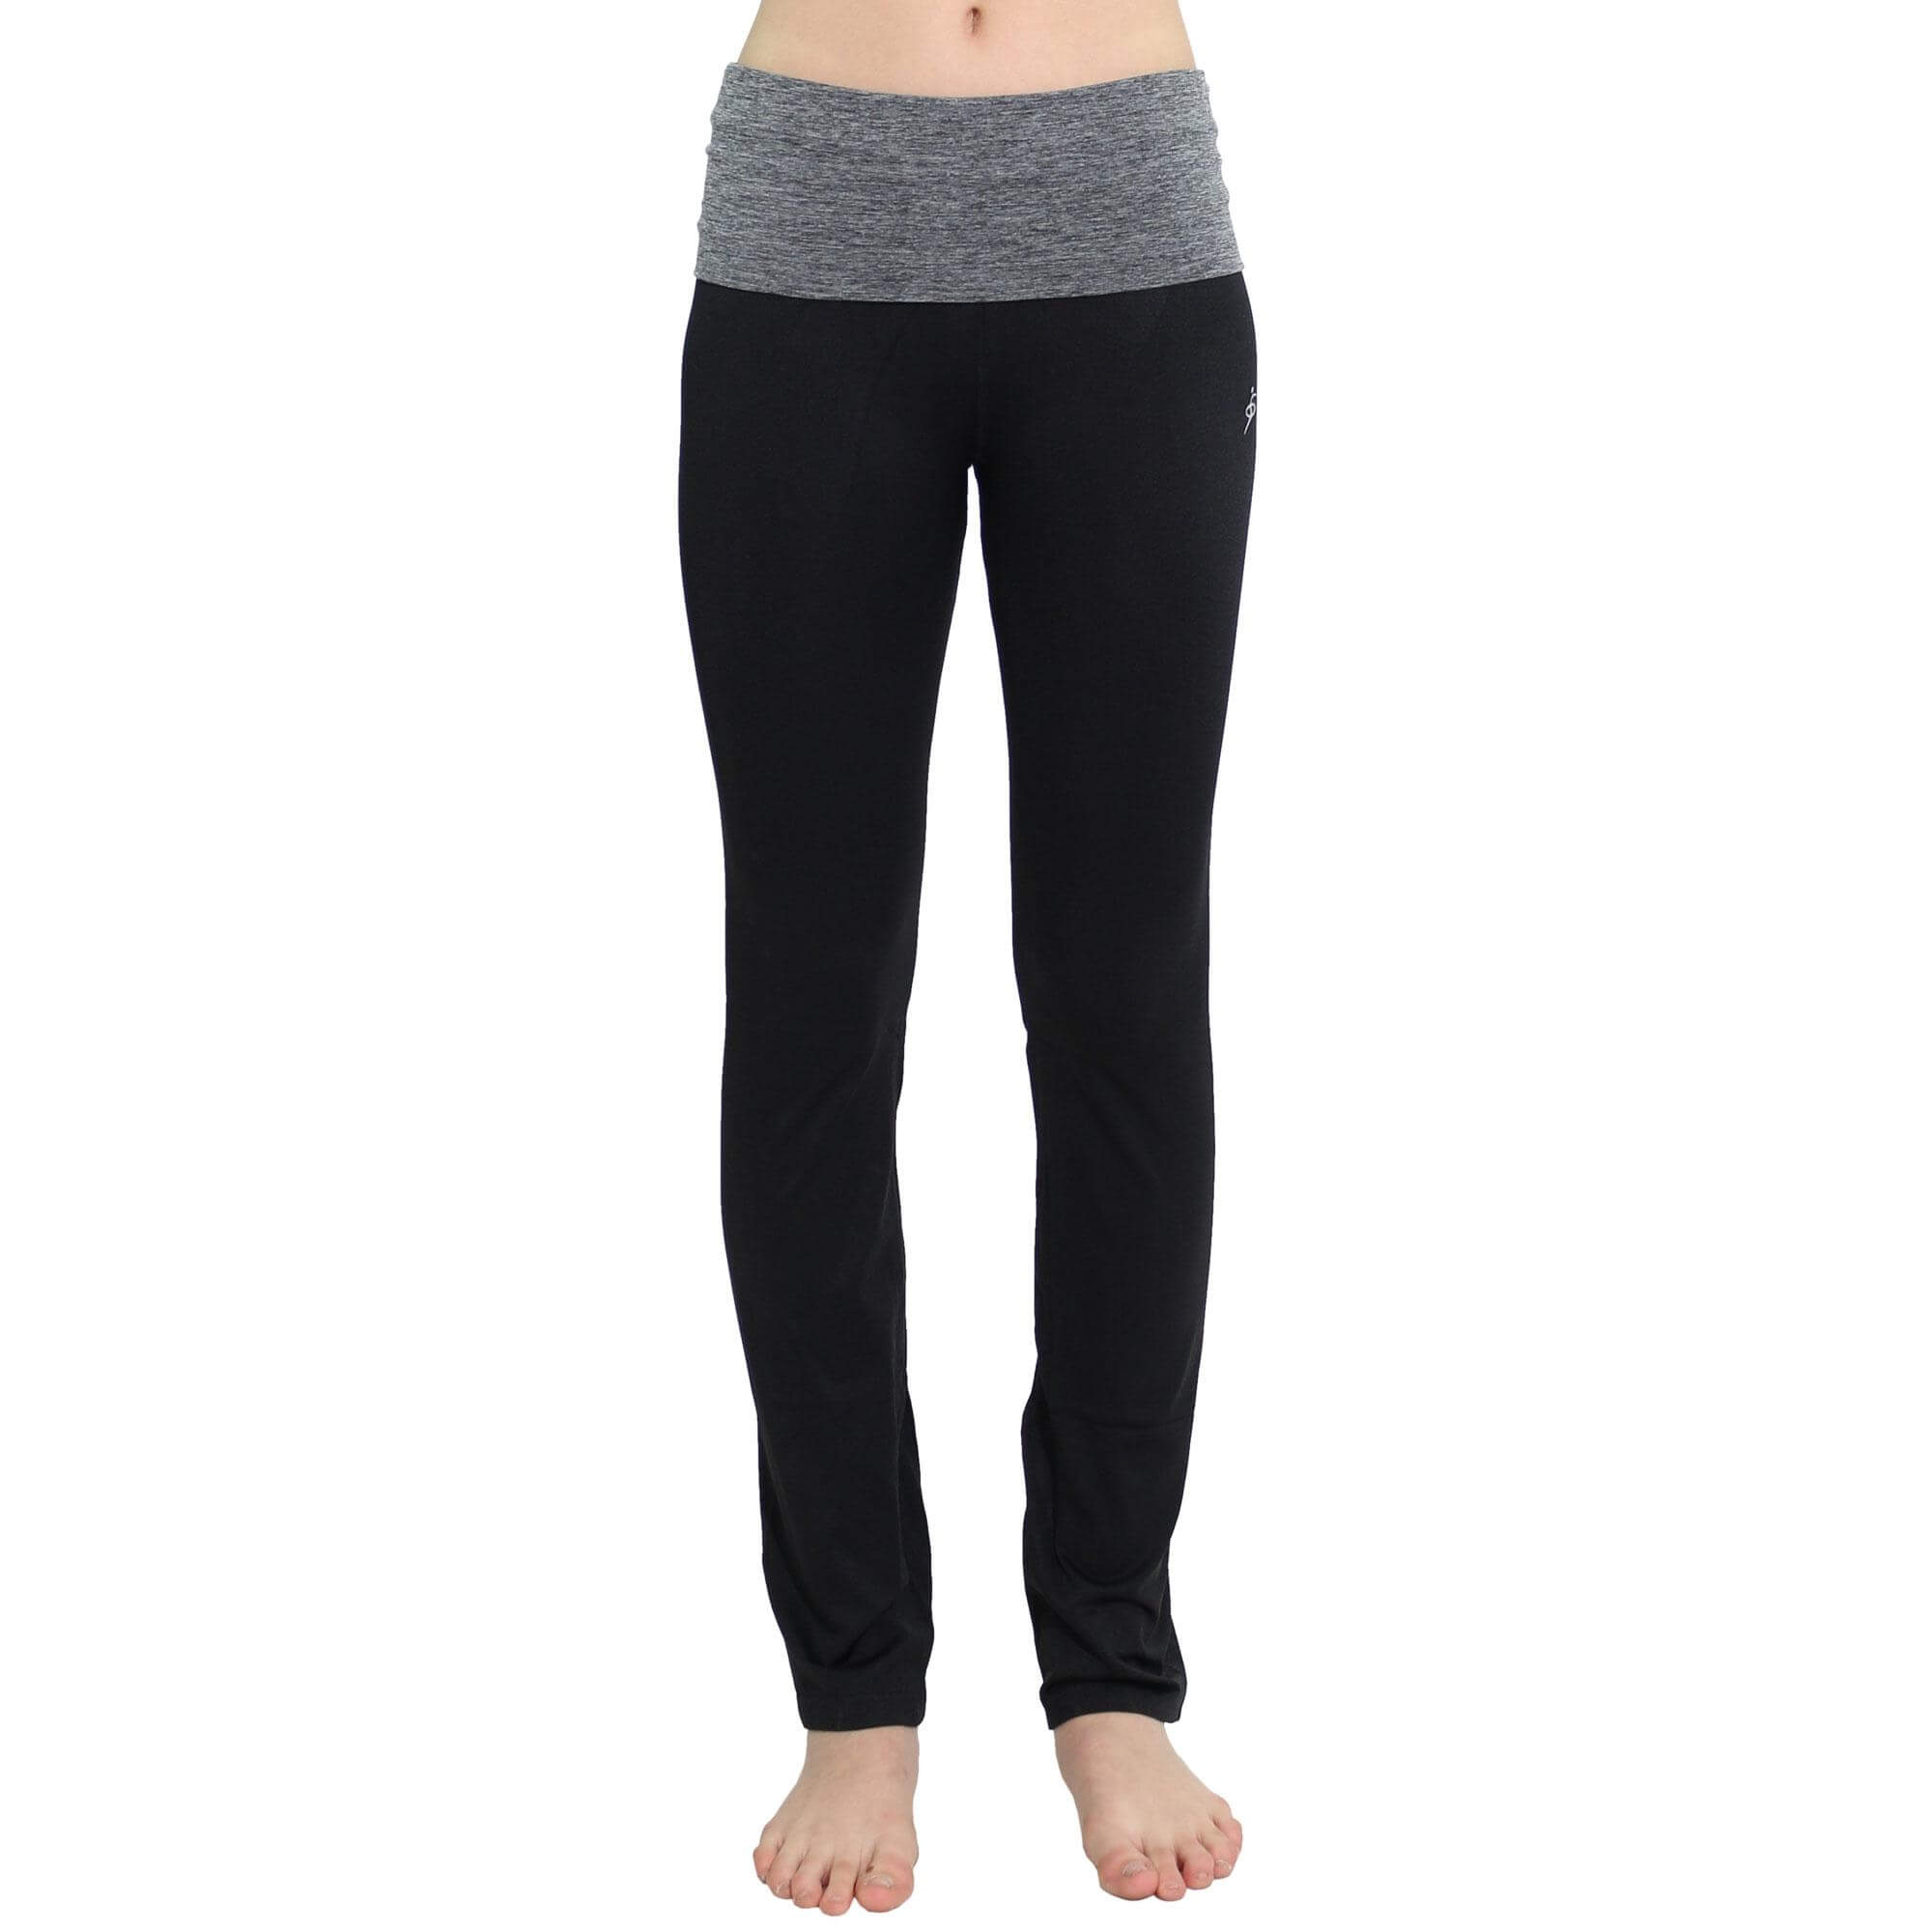 O to S Amazing Sport Dual-Color Yoga Pant